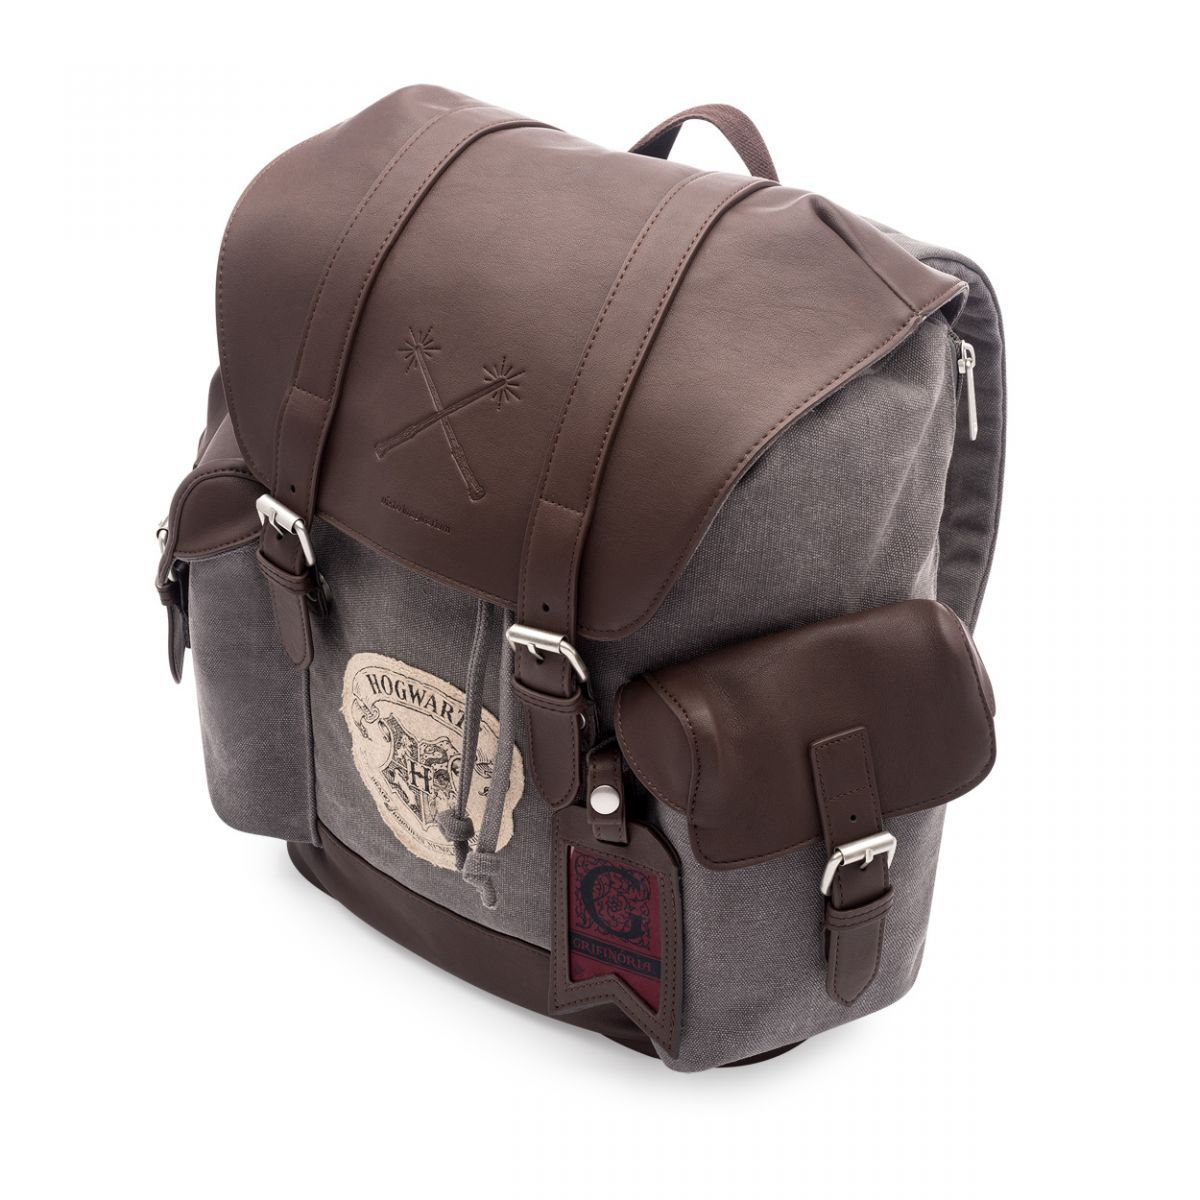 Mochila laptop harry potter hogwarts